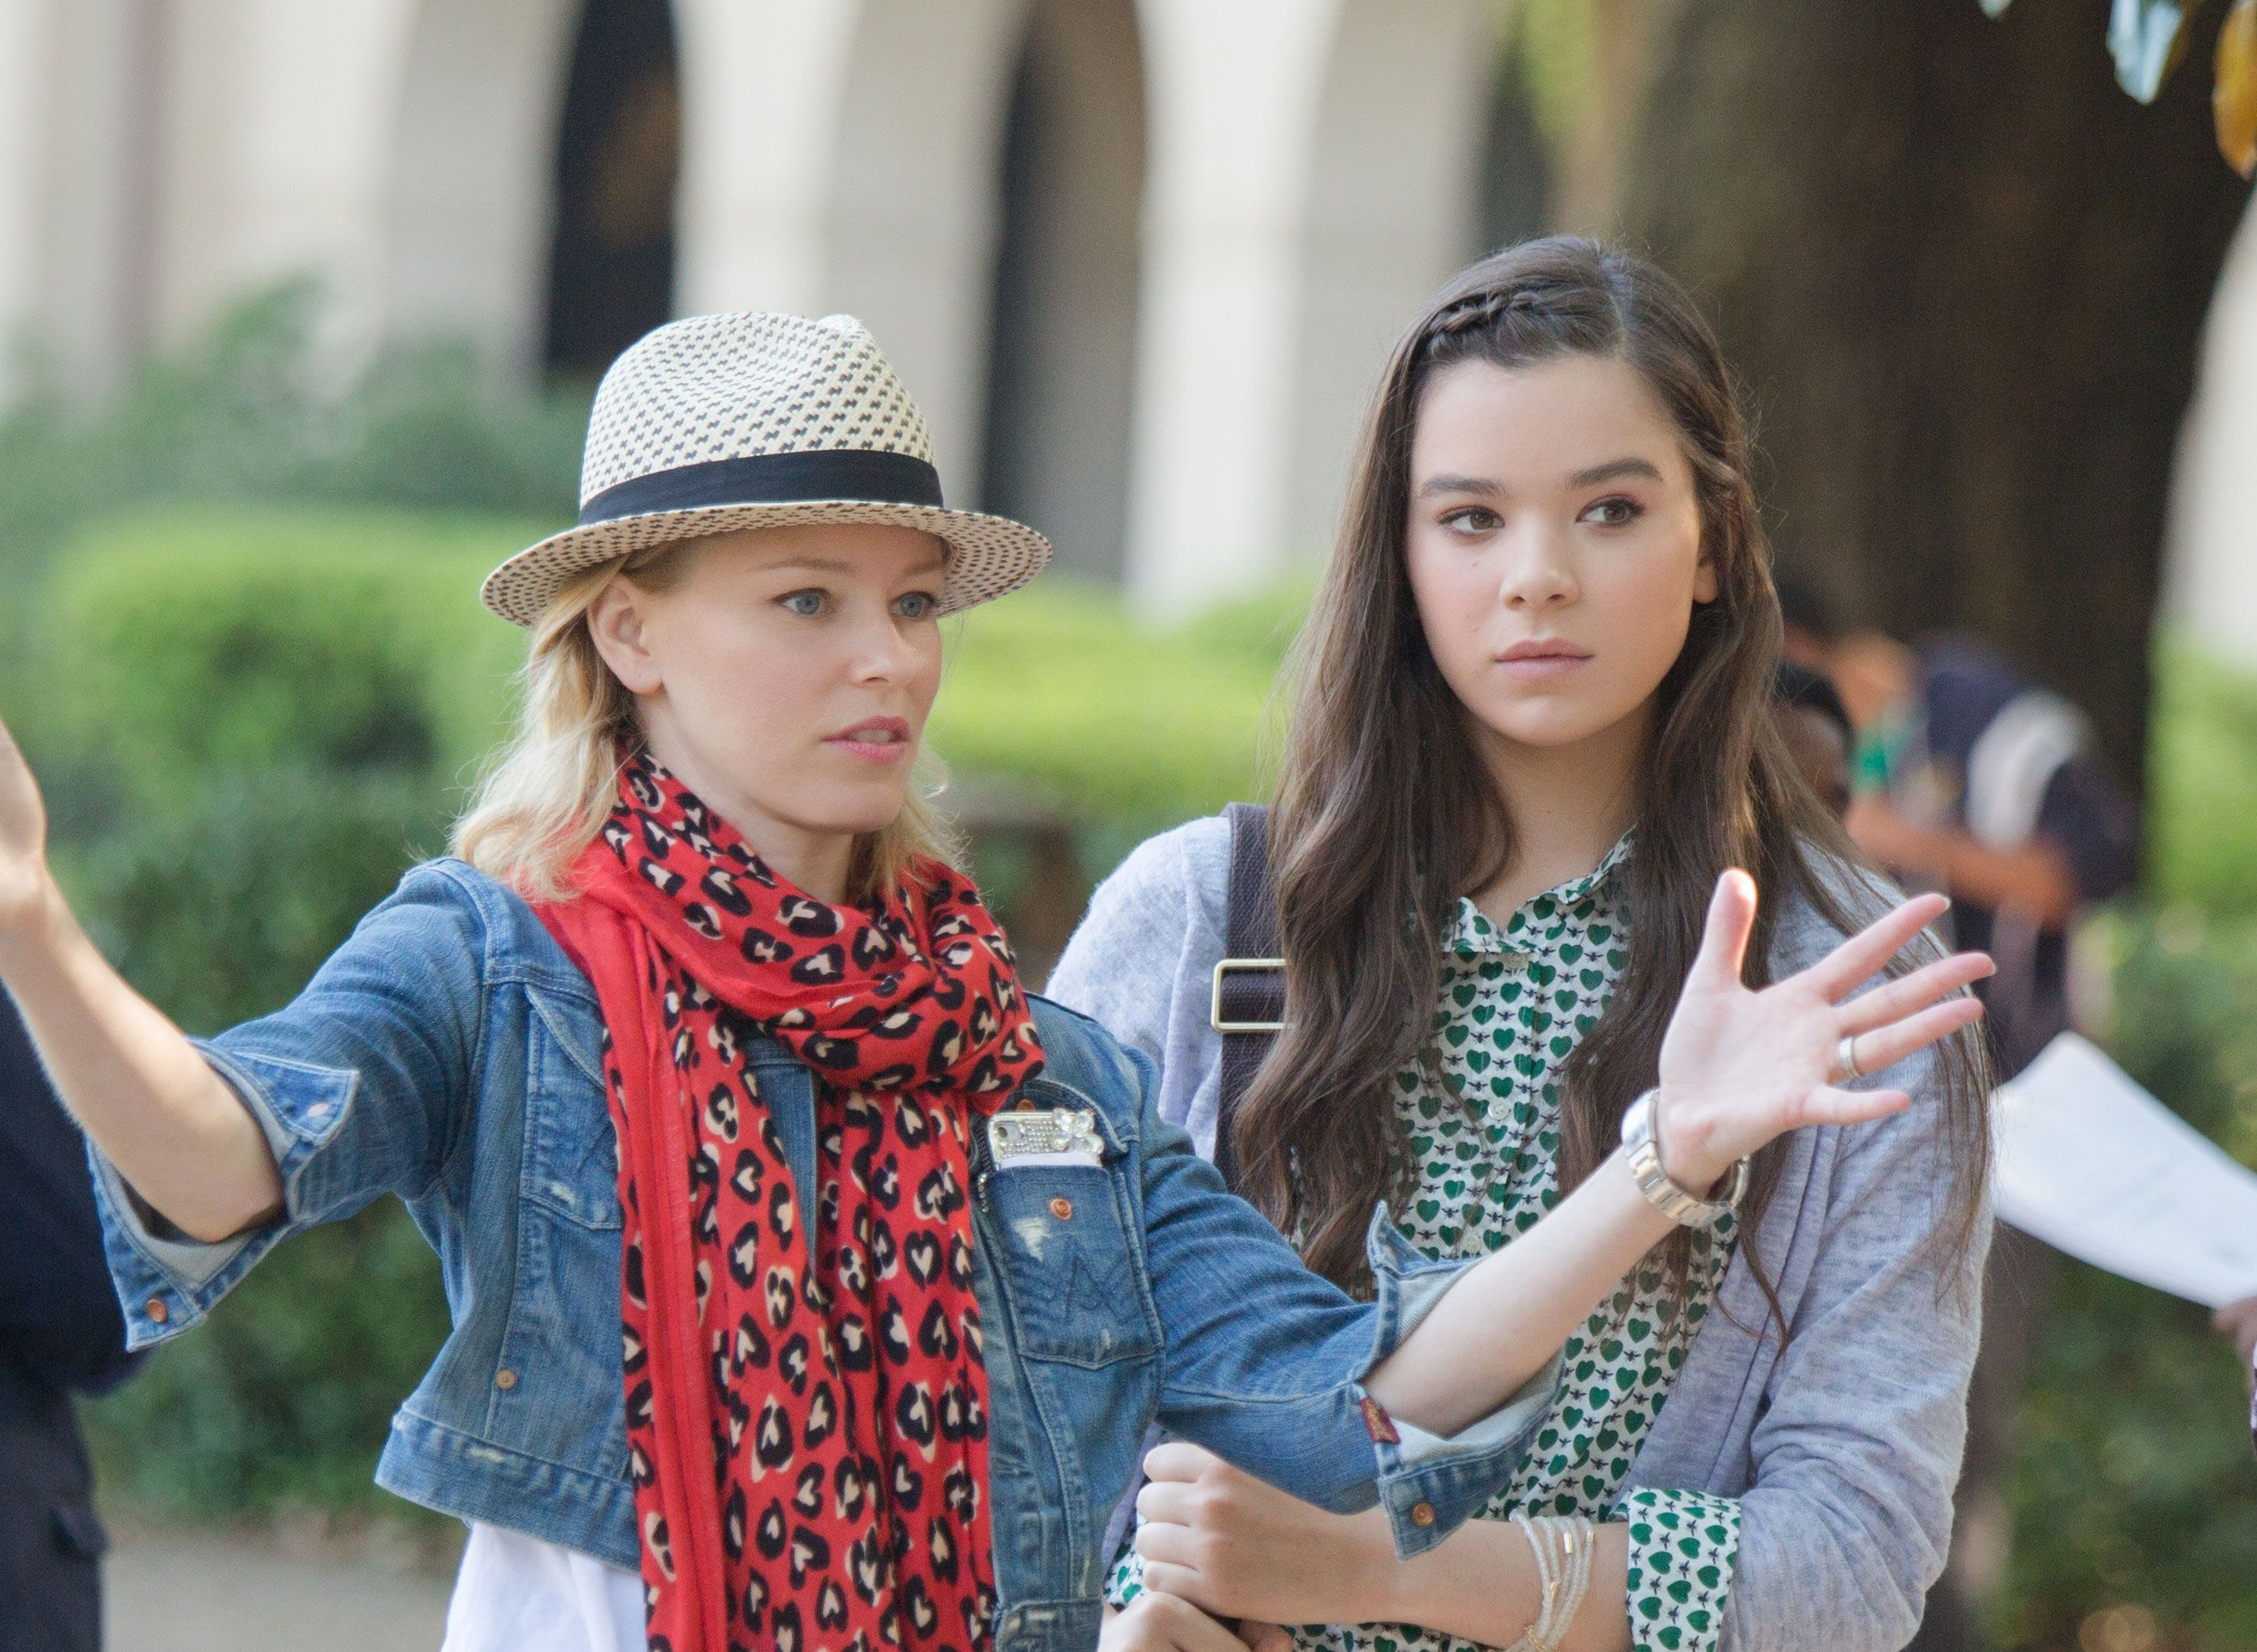 Hailee steinfeld filming pitch perfect nudes (85 pictures)